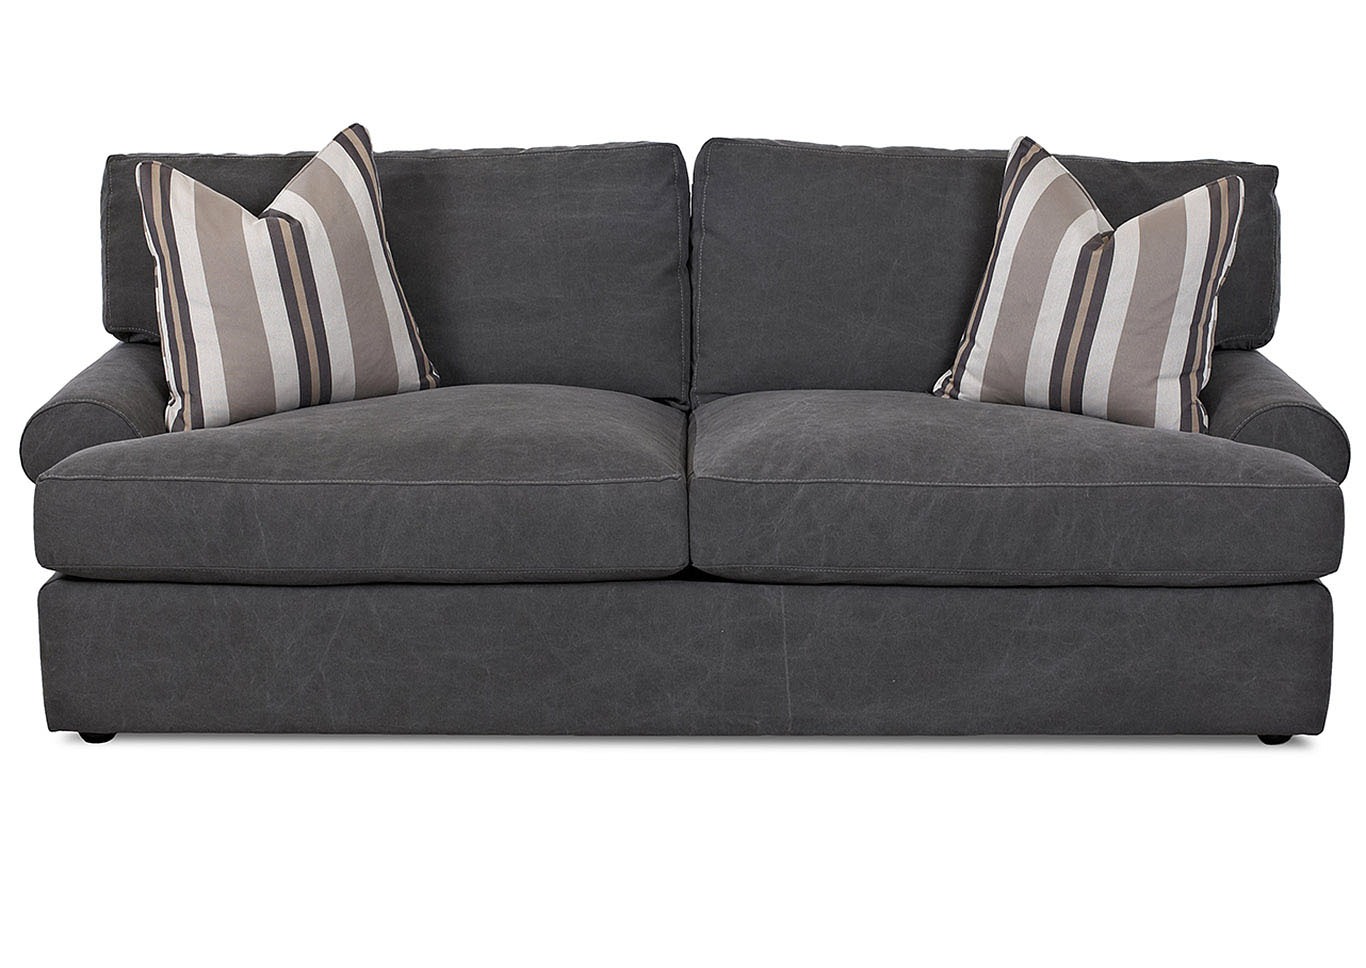 Adelyn Tibby Pewter Stationary Fabric Sofa,Klaussner Home Furnishings